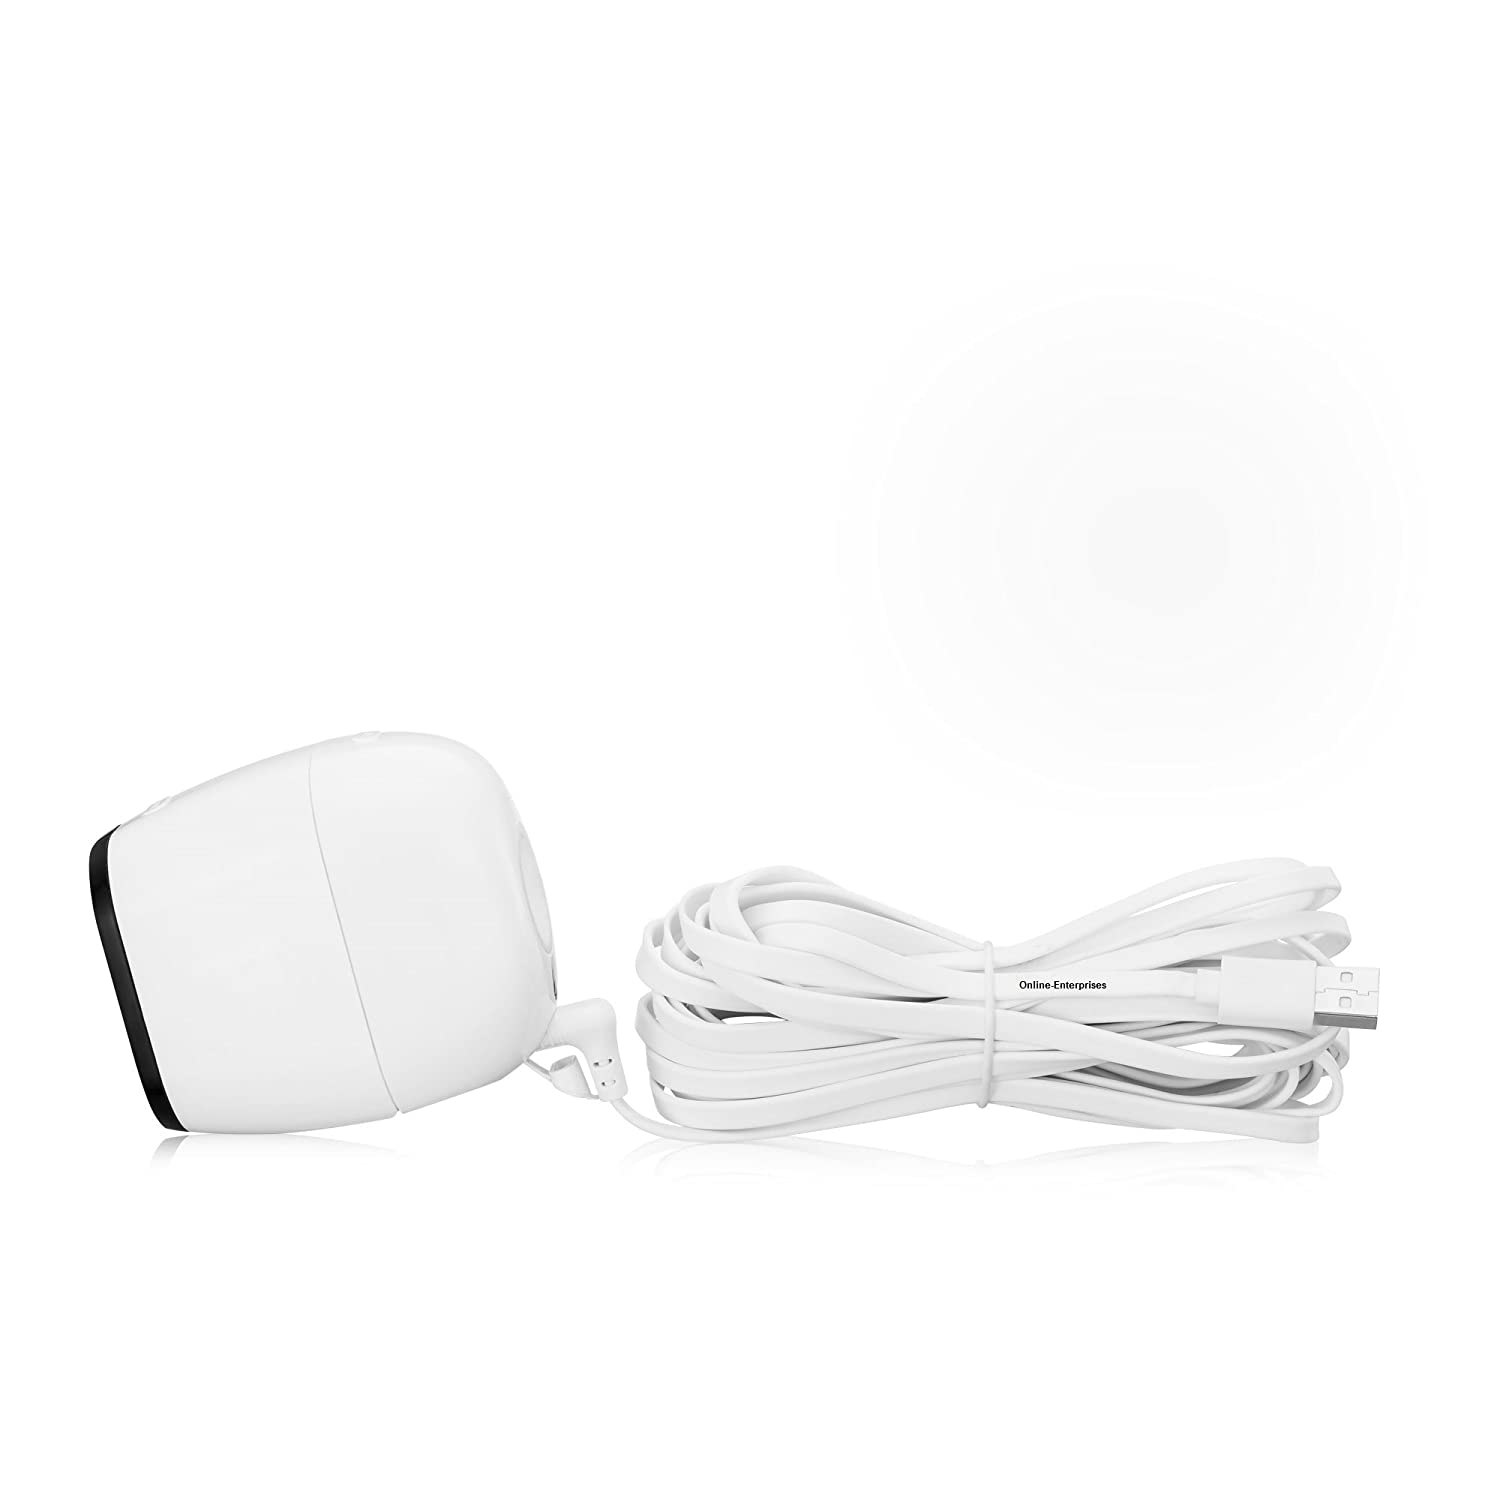 Online-Enterprises 20 foot charging Power Cable- Fits , Arlo Pro, Arlo Pro 2 , Arlo GO -Indoor/Outdoor compatible, Weatherproof- flat- Quick Charge (White power cord)